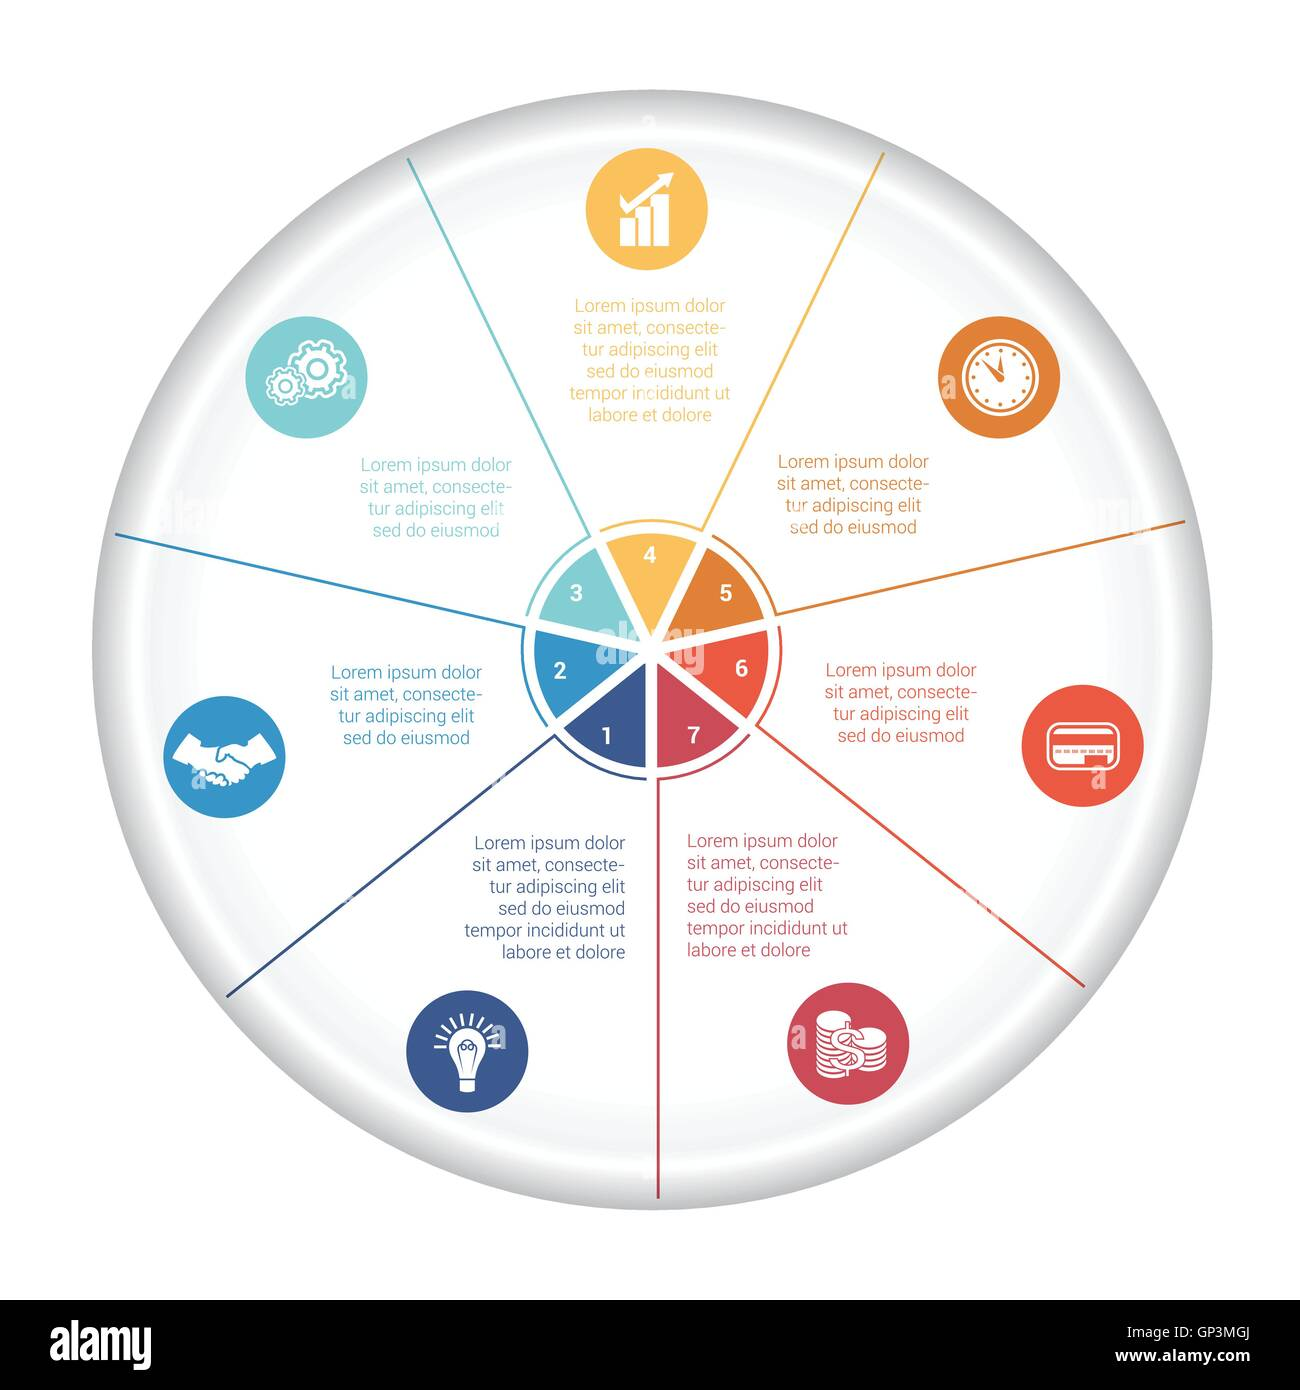 hight resolution of pie chart diagram data 7 options for text area template infographic with icons and numbered